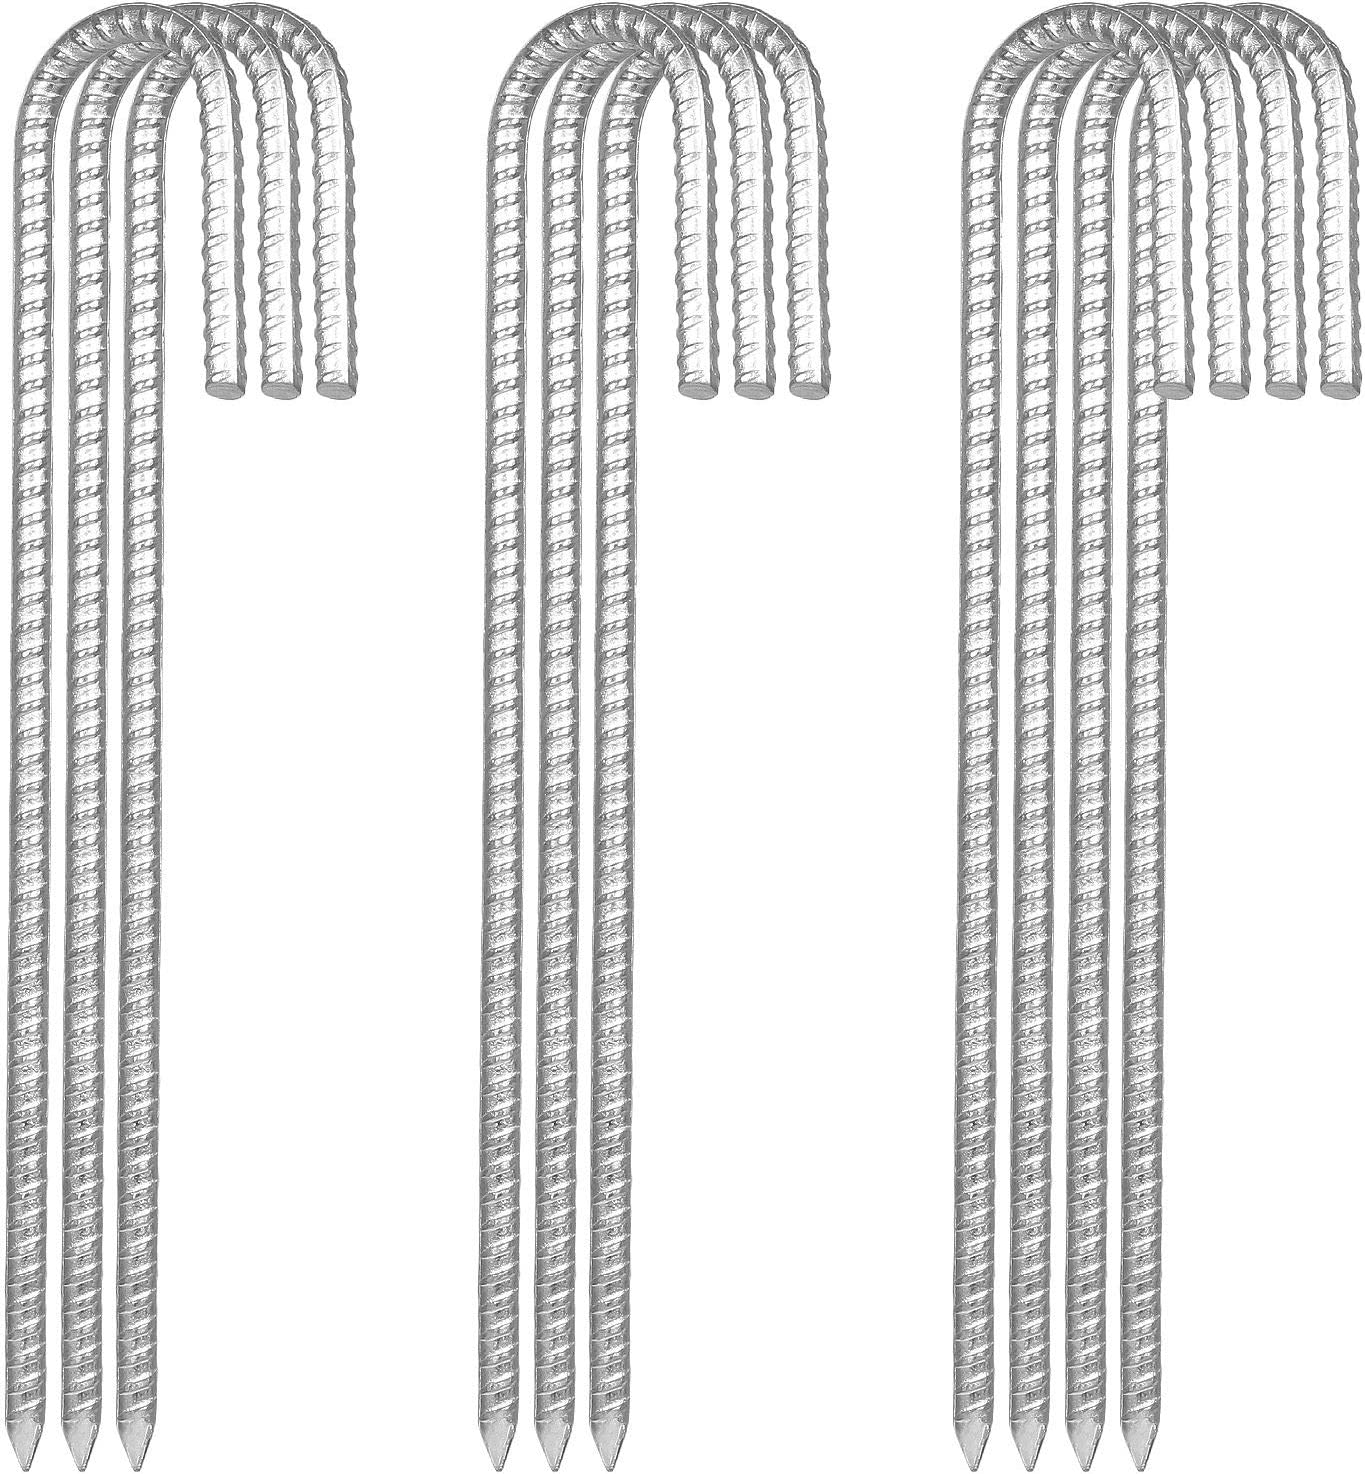 """10 Pack 12""""Galvanized Rebar Tent Stakes J Hook, Heavy Duty J Hook Ground Anchors, Curved Steel Plant Support Garden Stake with Chisel Point end for Fence Stakes, Canopies, Sheds, Swing Sets"""